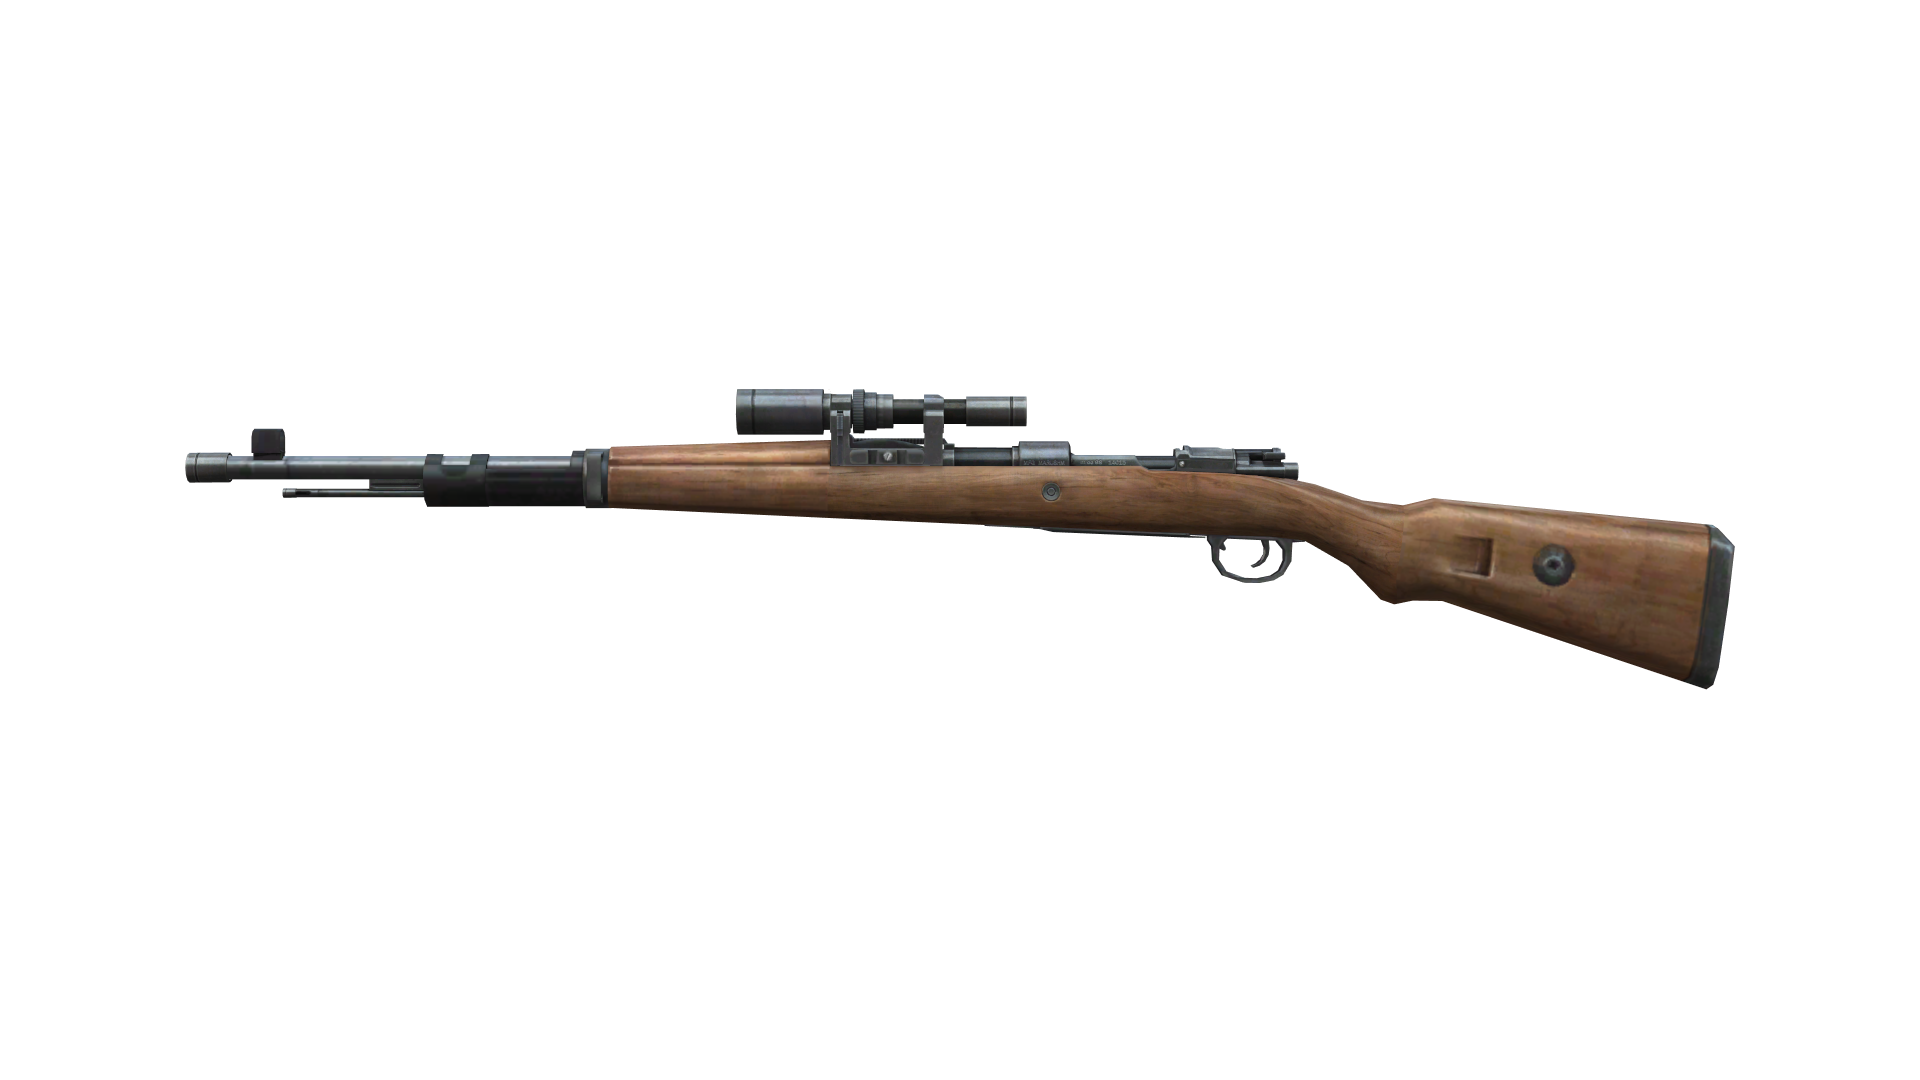 Rifle png images free. Hunter clipart sniper